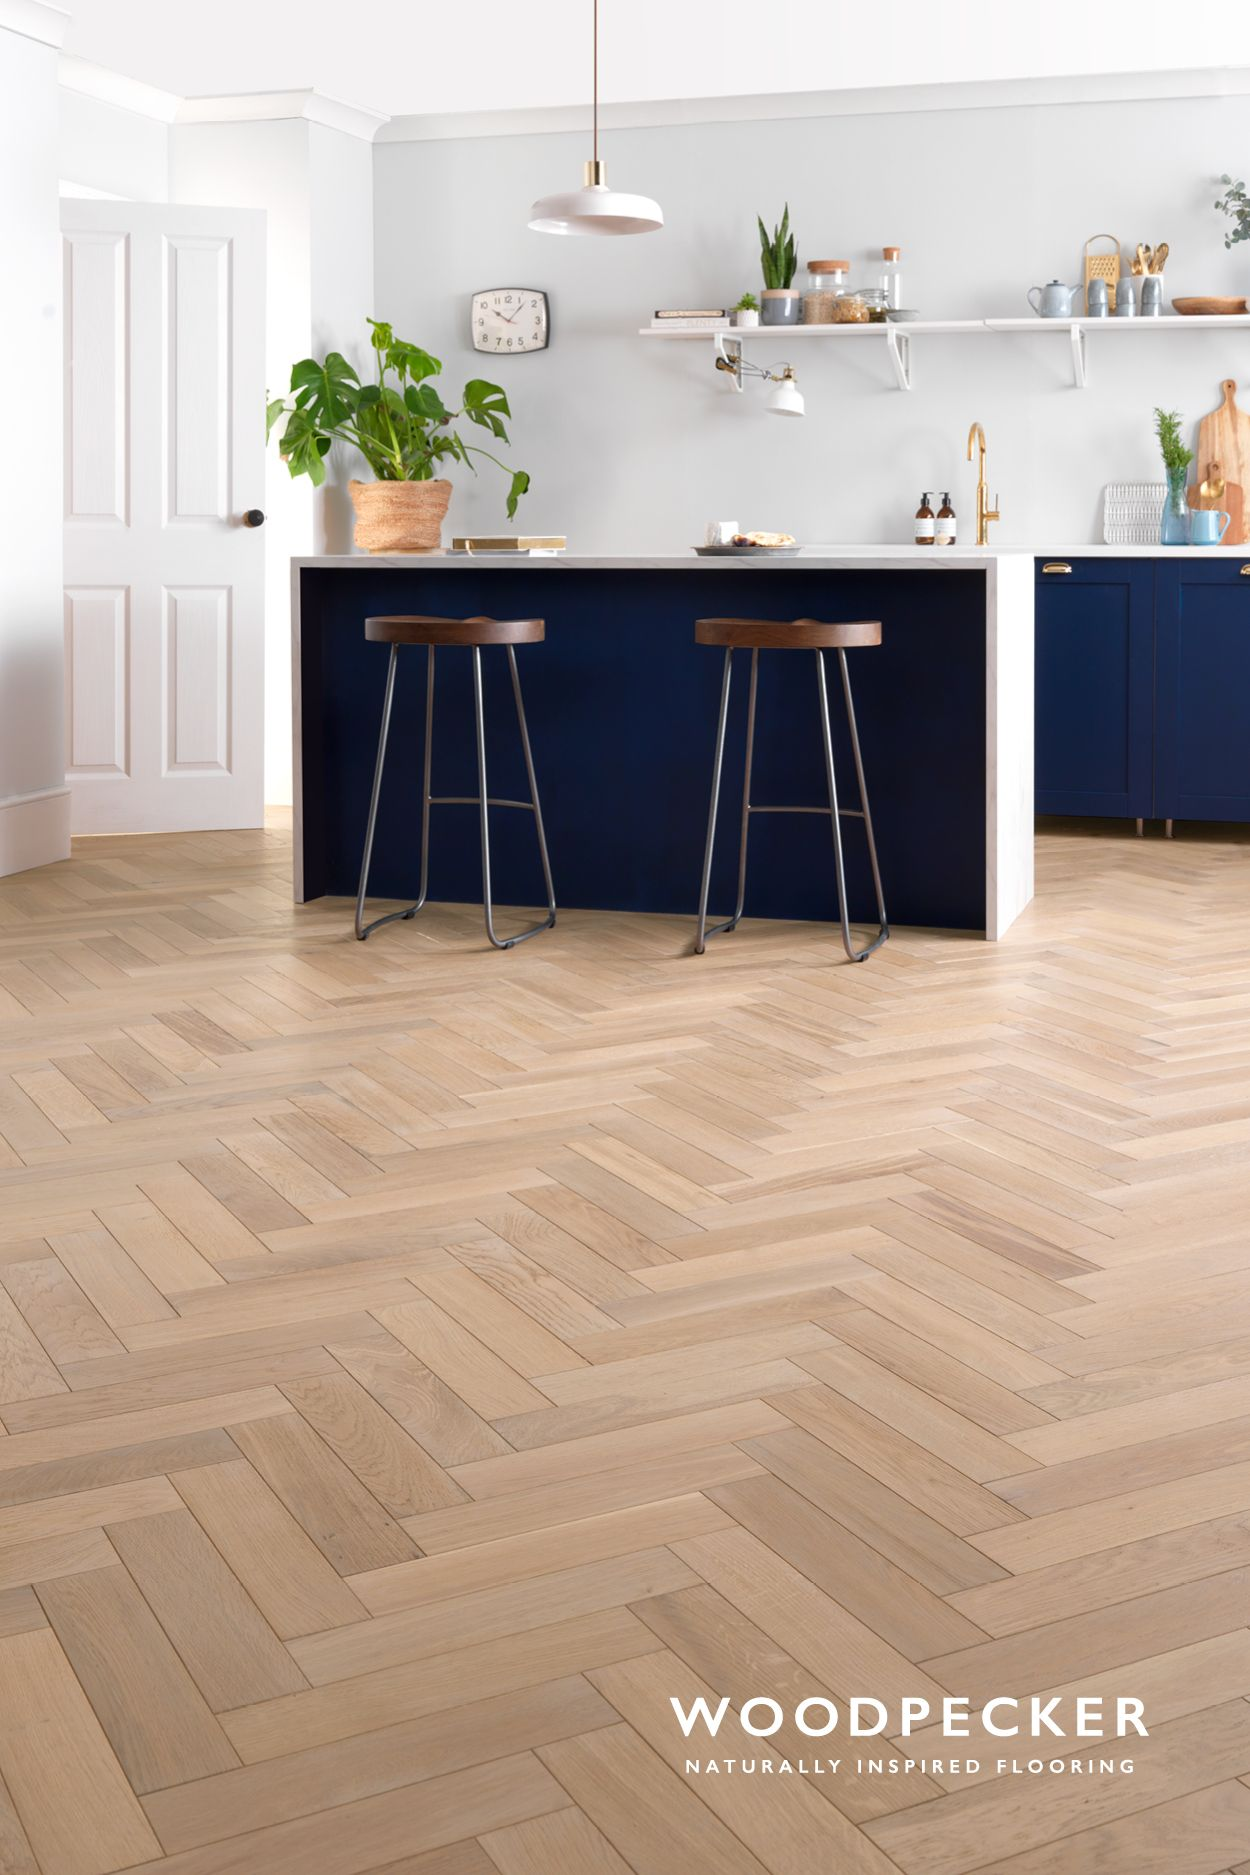 Site Search Discovery Powered By Ai Oak Wood Floors Wood Floor Kitchen Herringbone Wood Floor